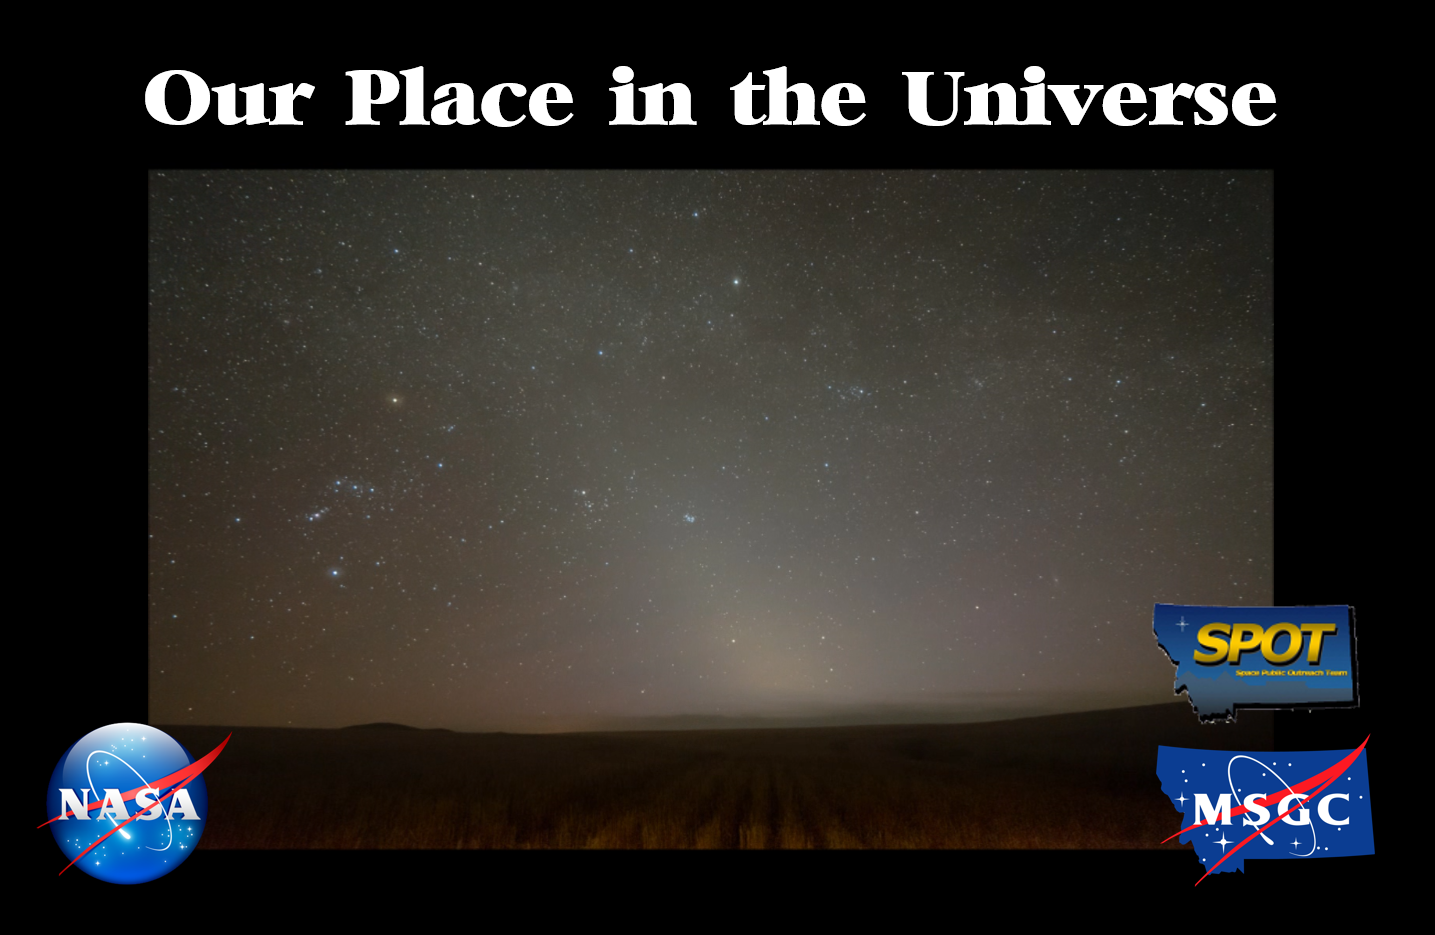 Our Place in the Universe SPOT Show